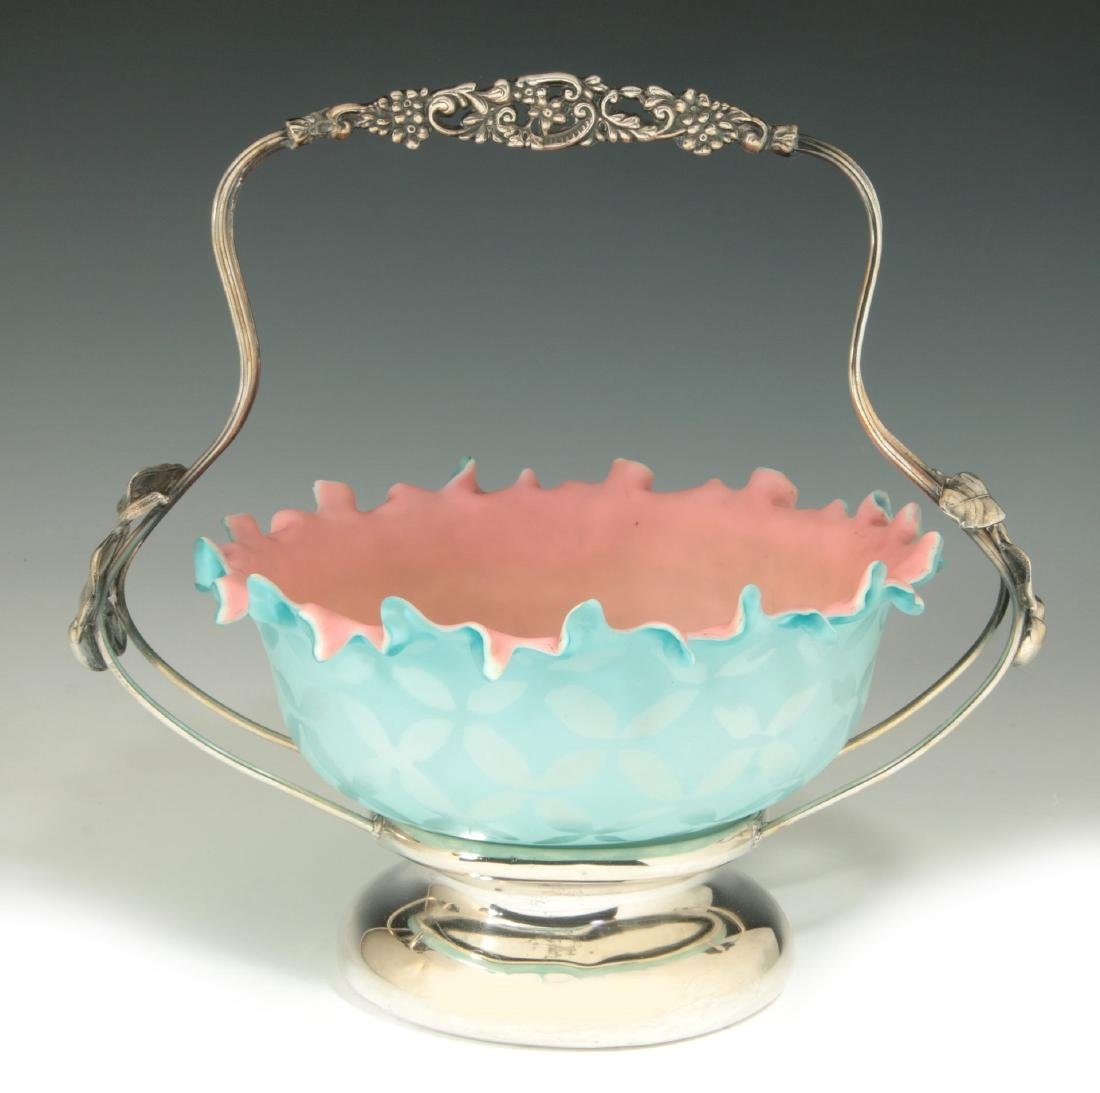 AN UNUSUAL 19TH C. MOTHER-OF-PEARL GLASS BRIDE'S BASKET - 2